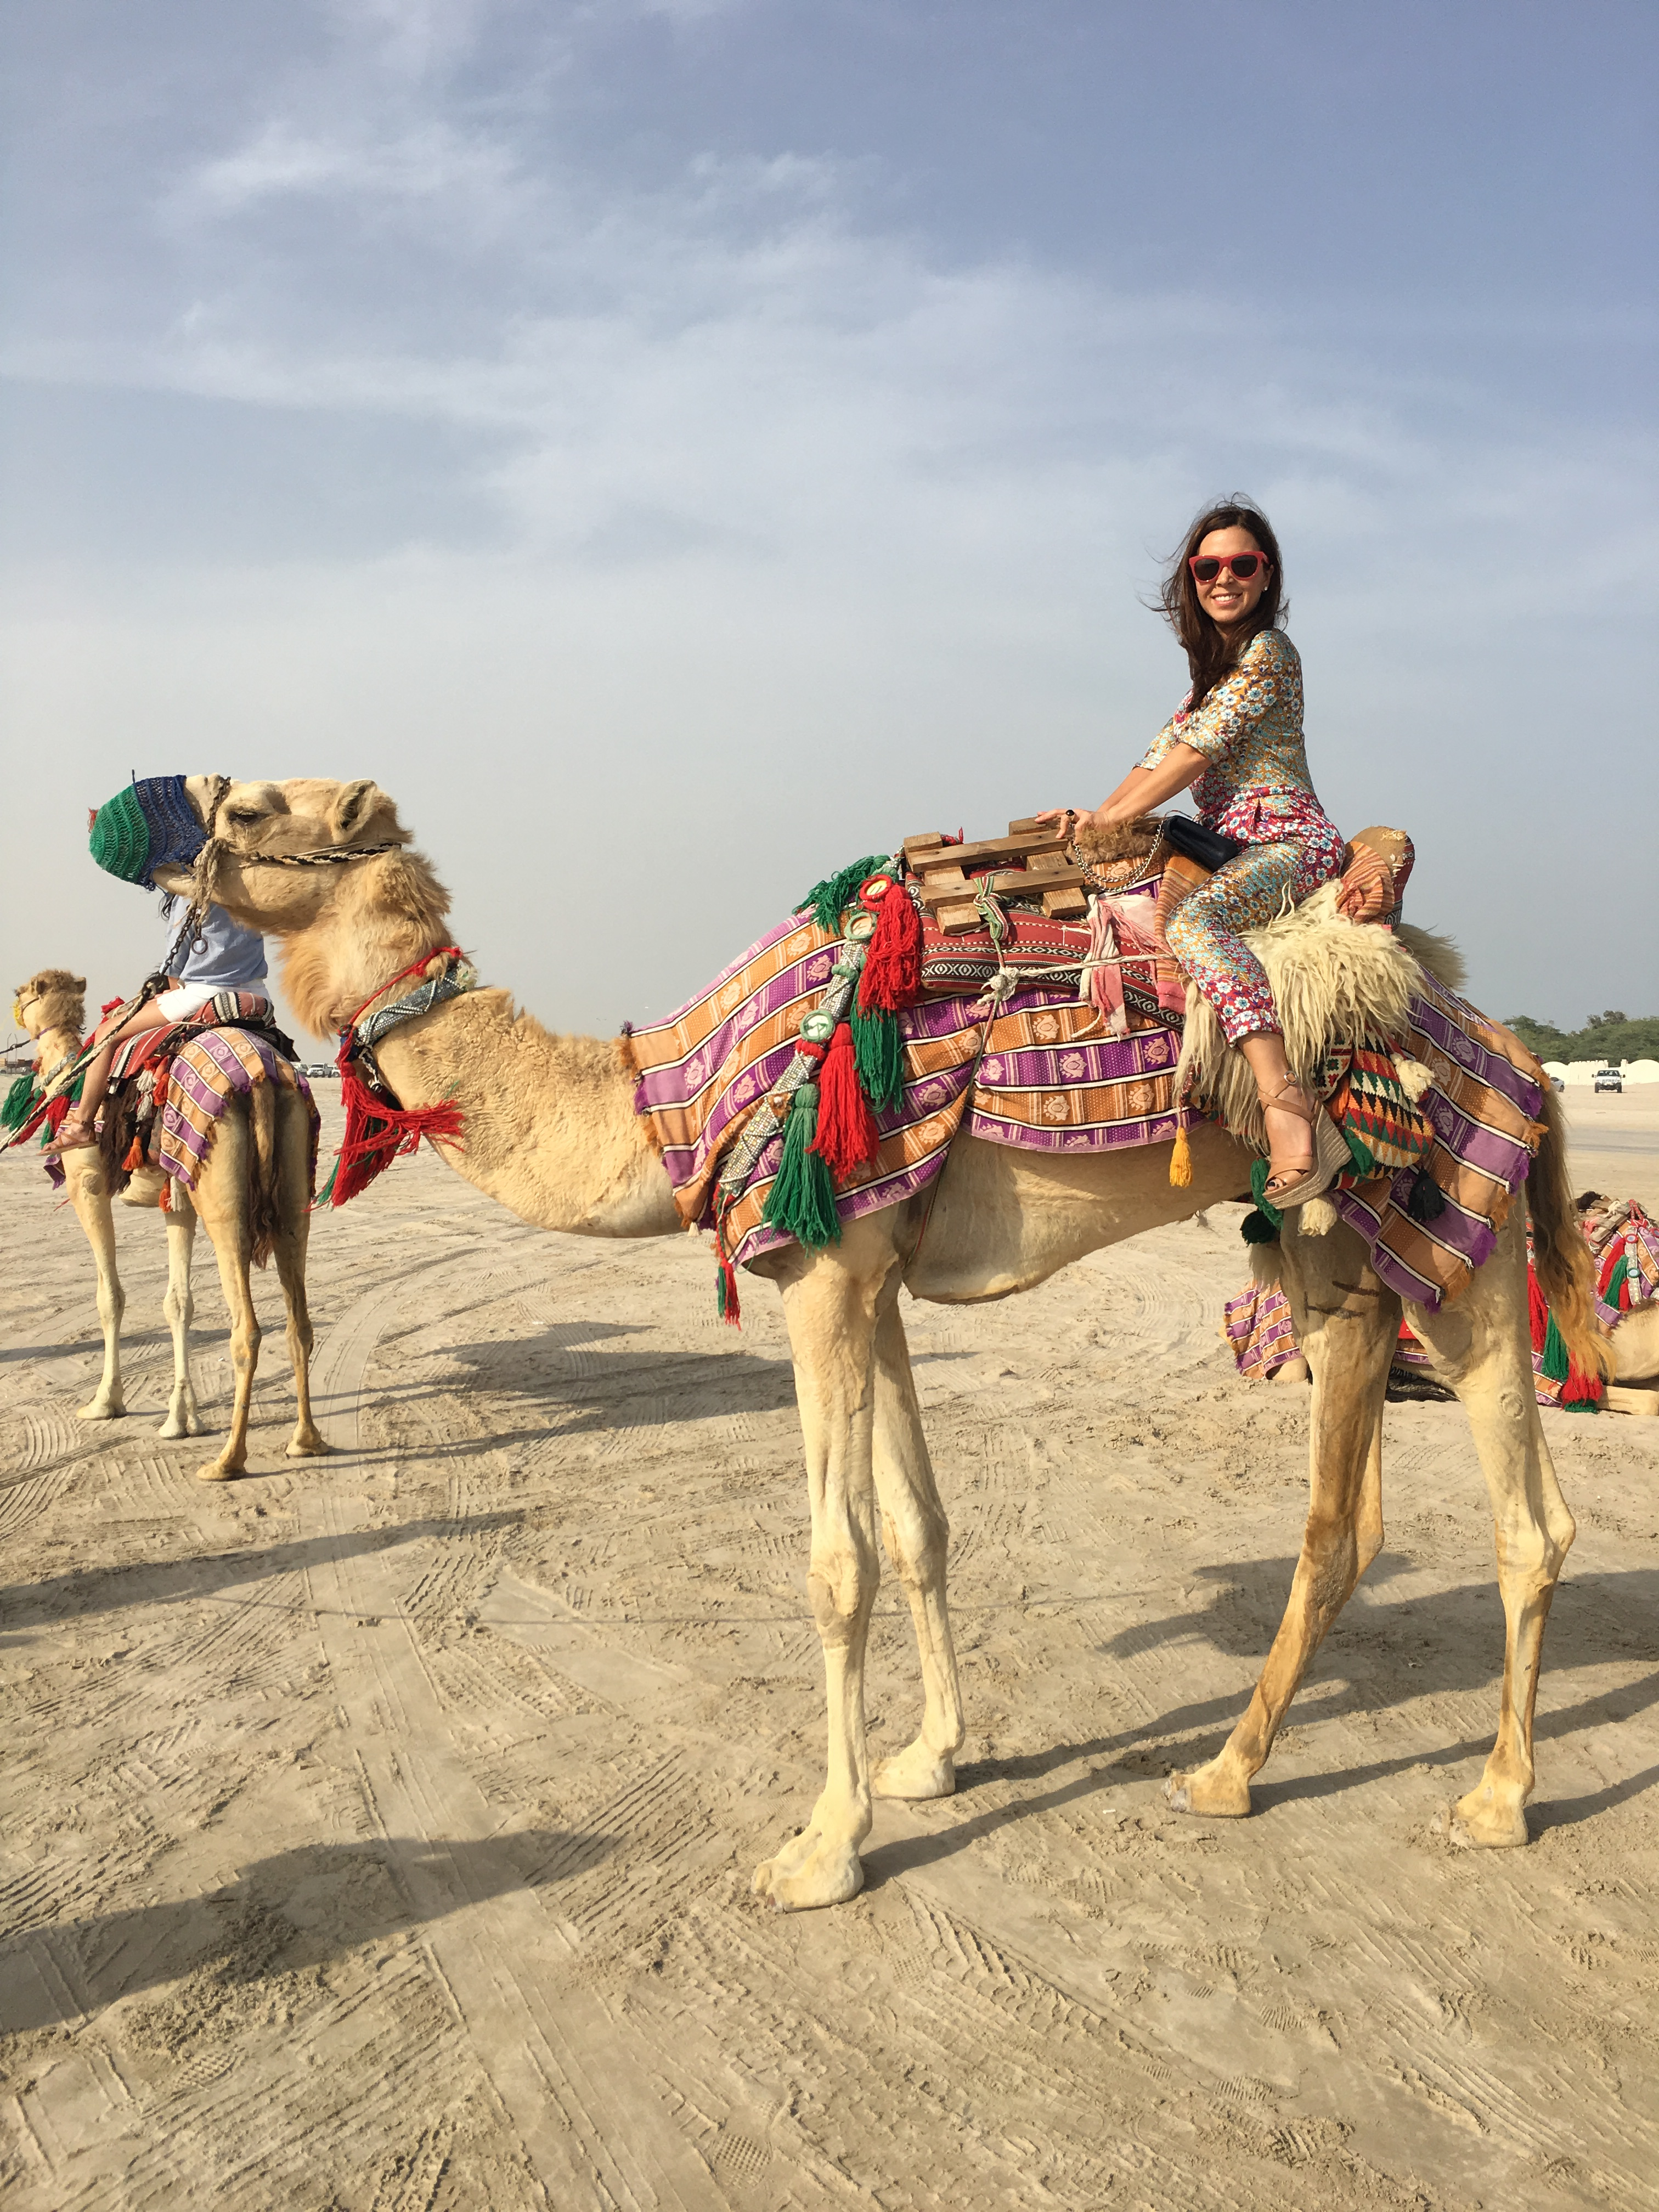 Monique Lhuillier travel diary: My morning commute